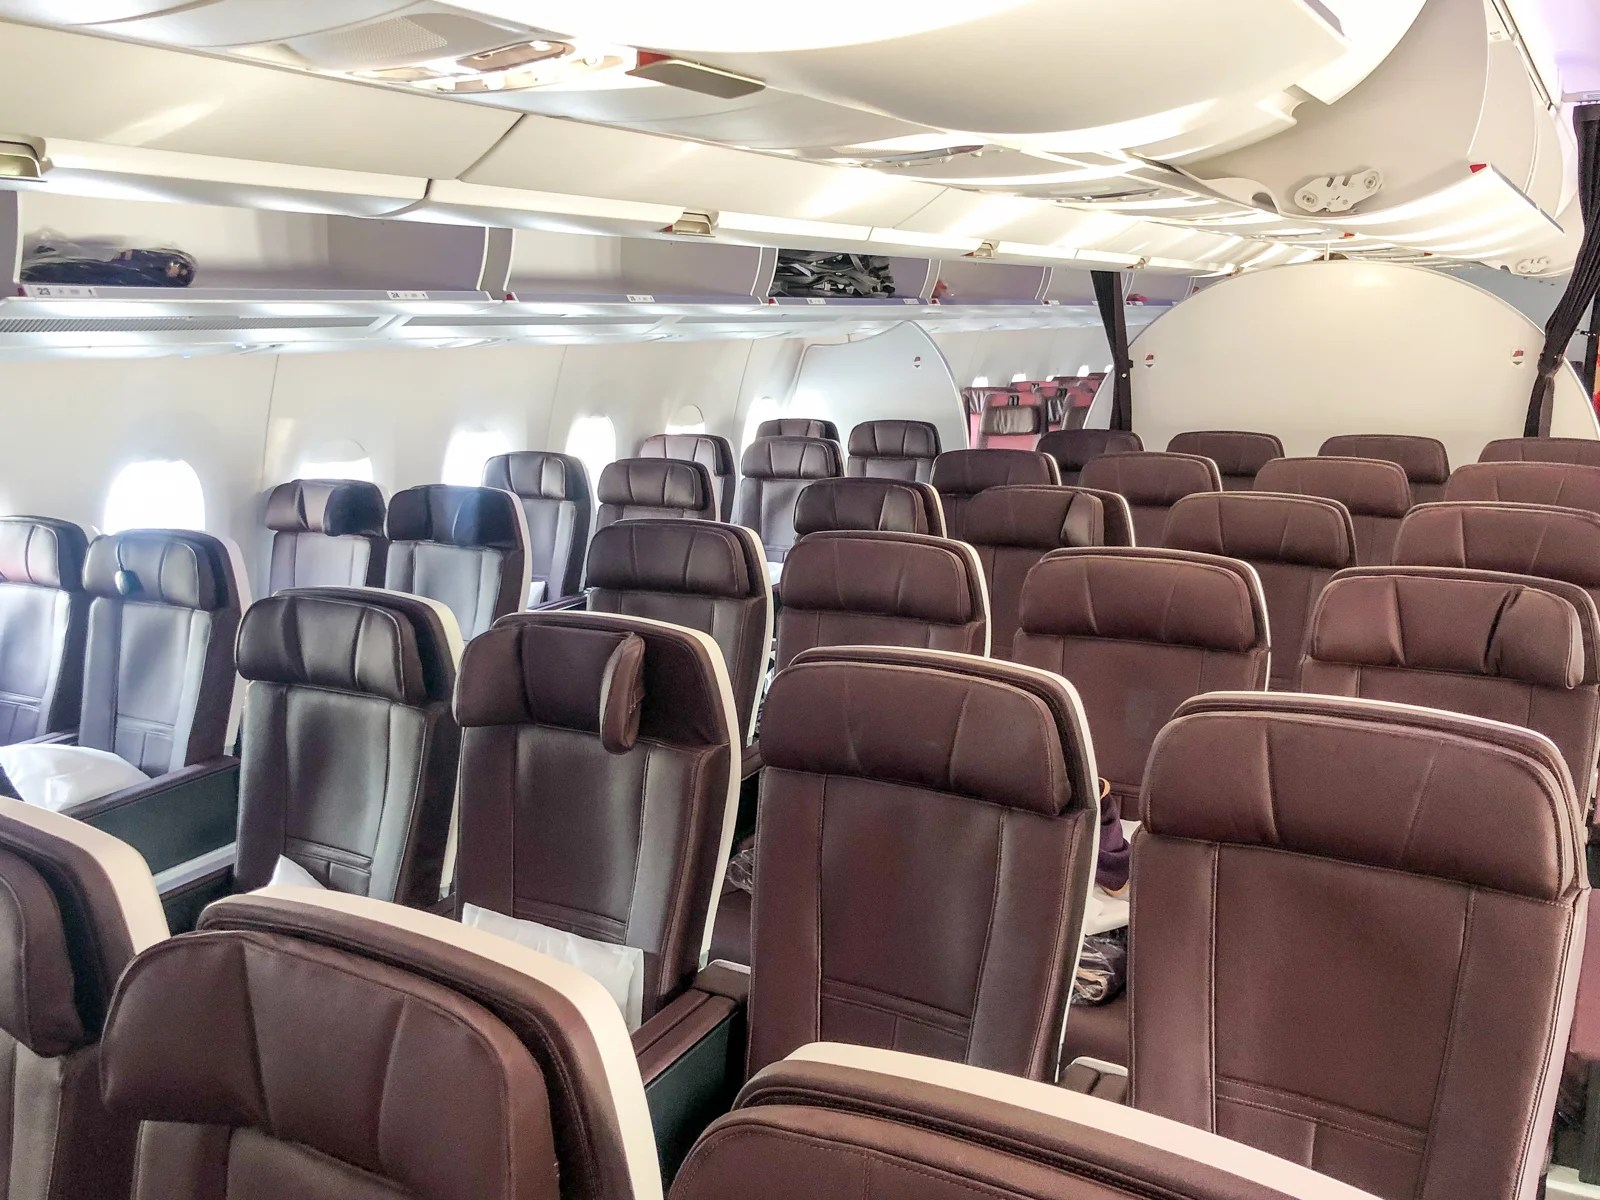 Premium, upgraded: A review of Virgin Atlantic's new Premium product on the A350